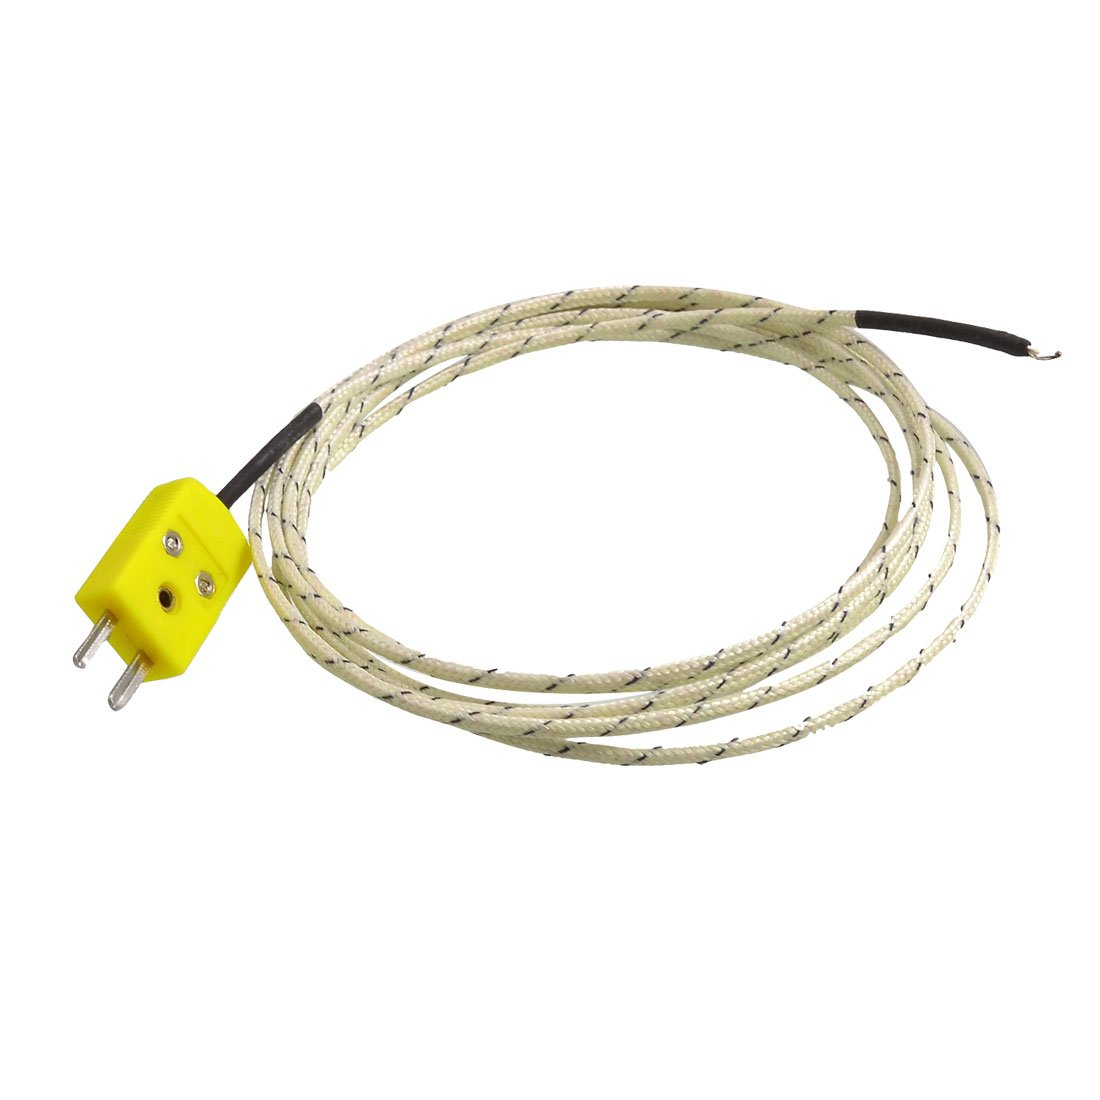 CNIM Hot 2M Cable K Type Thermocouple Temperature Measuring Probe Sensor White k type thermocouple probe temperature sensor silver 2 meters